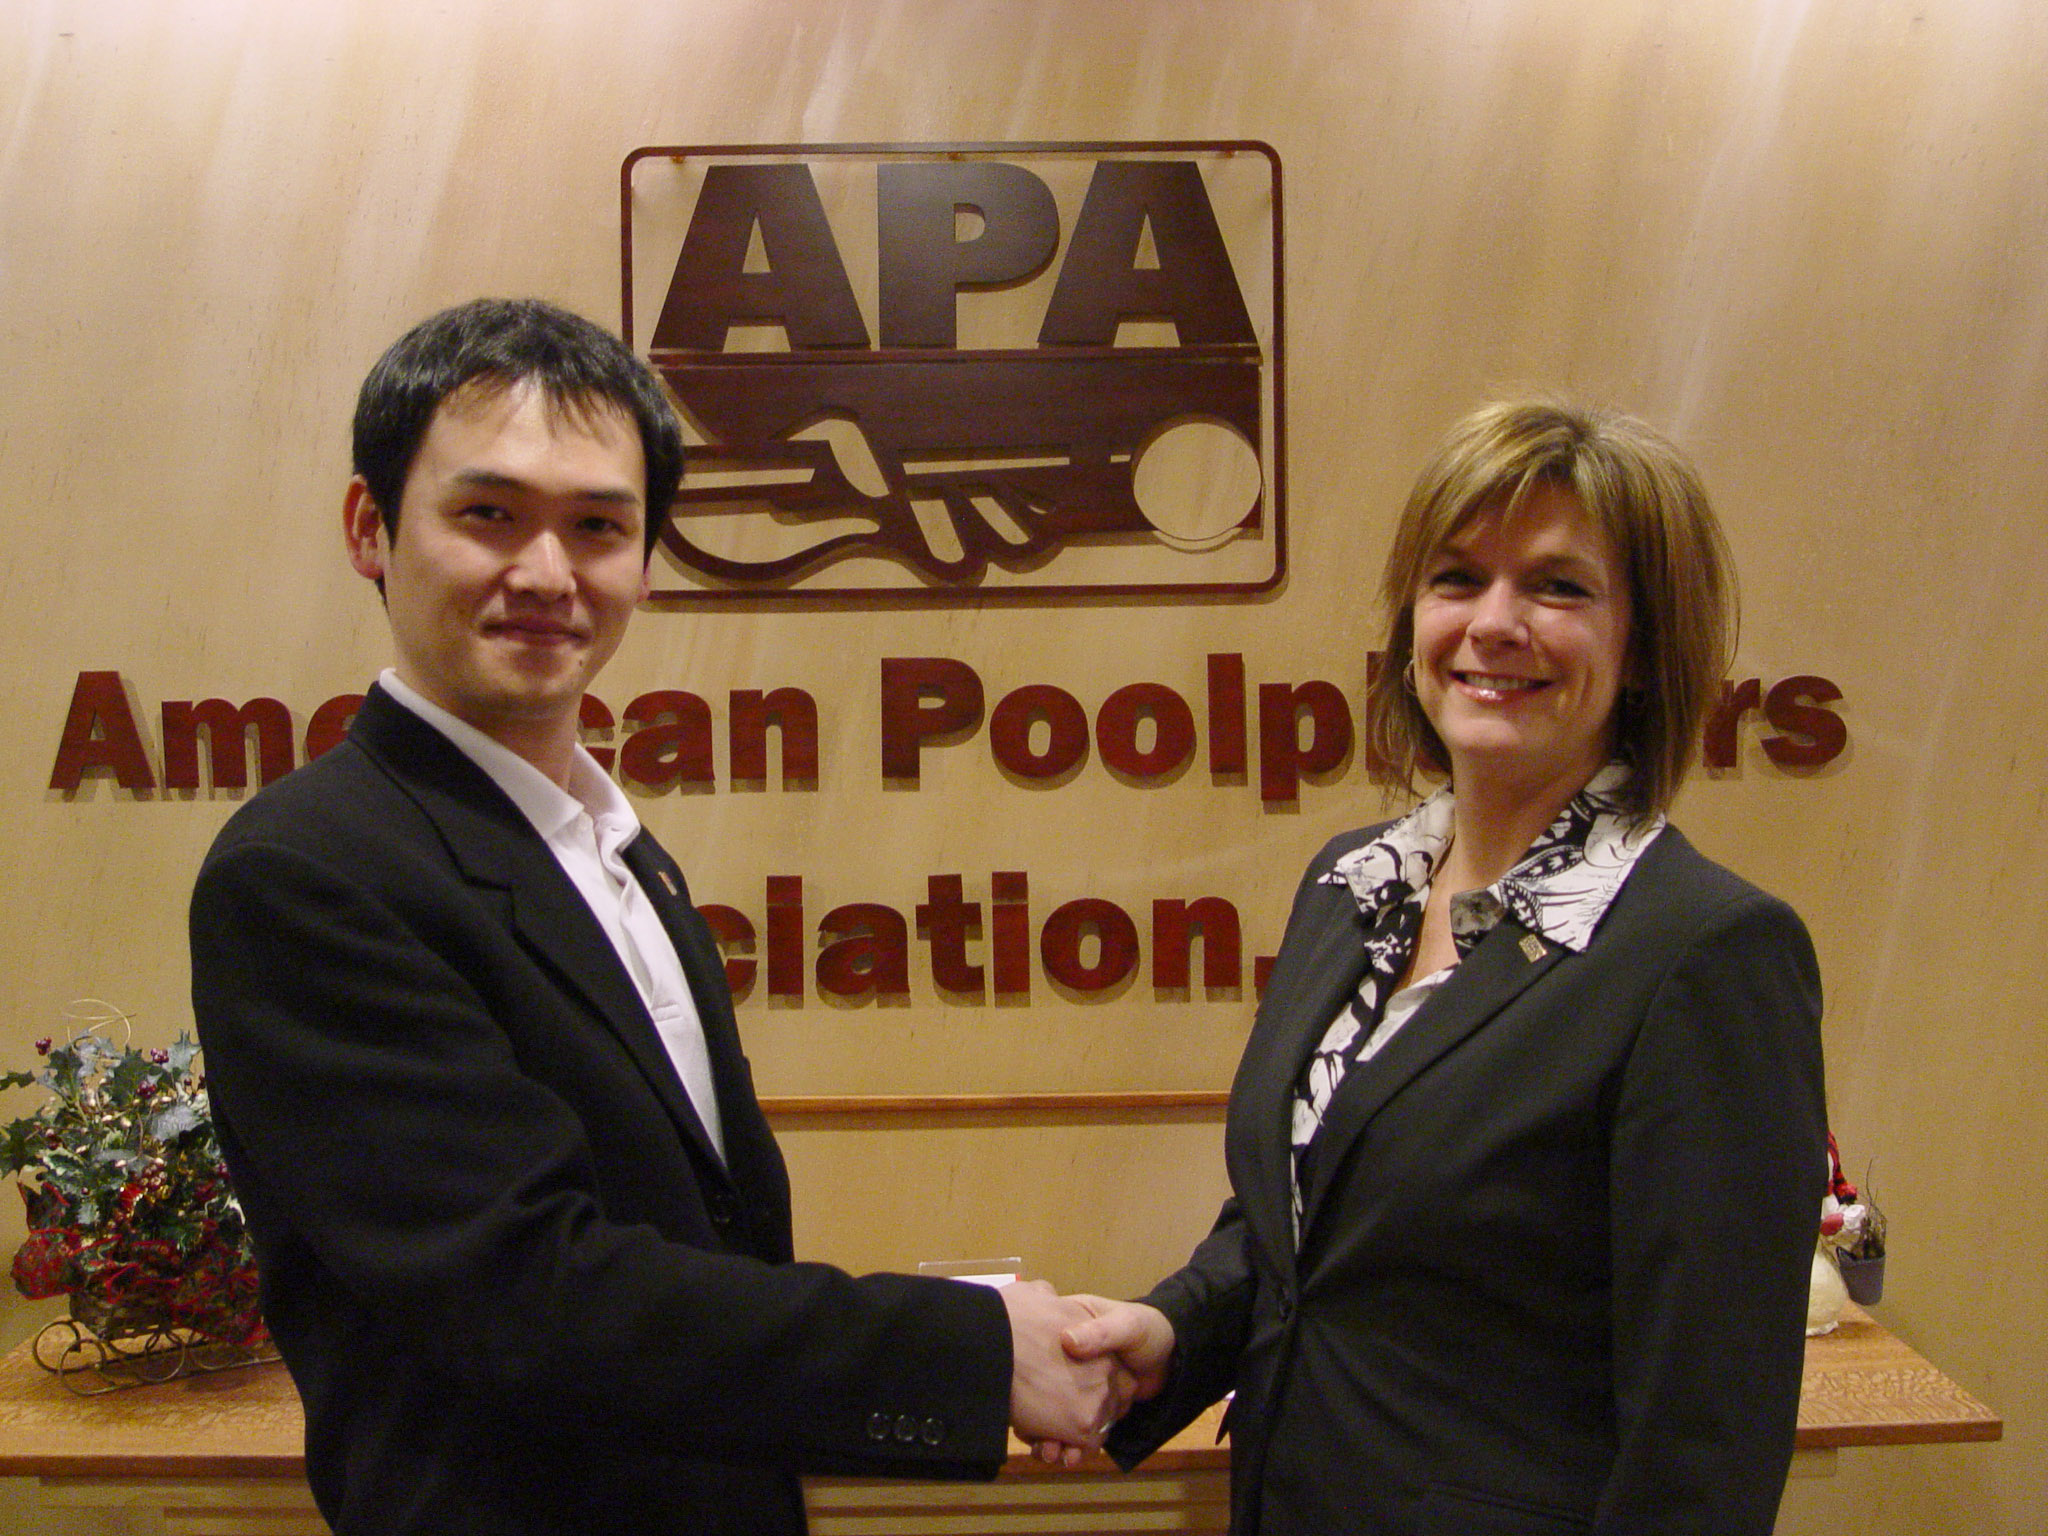 APA Donates $5,000 to Relief Efforts in Japan